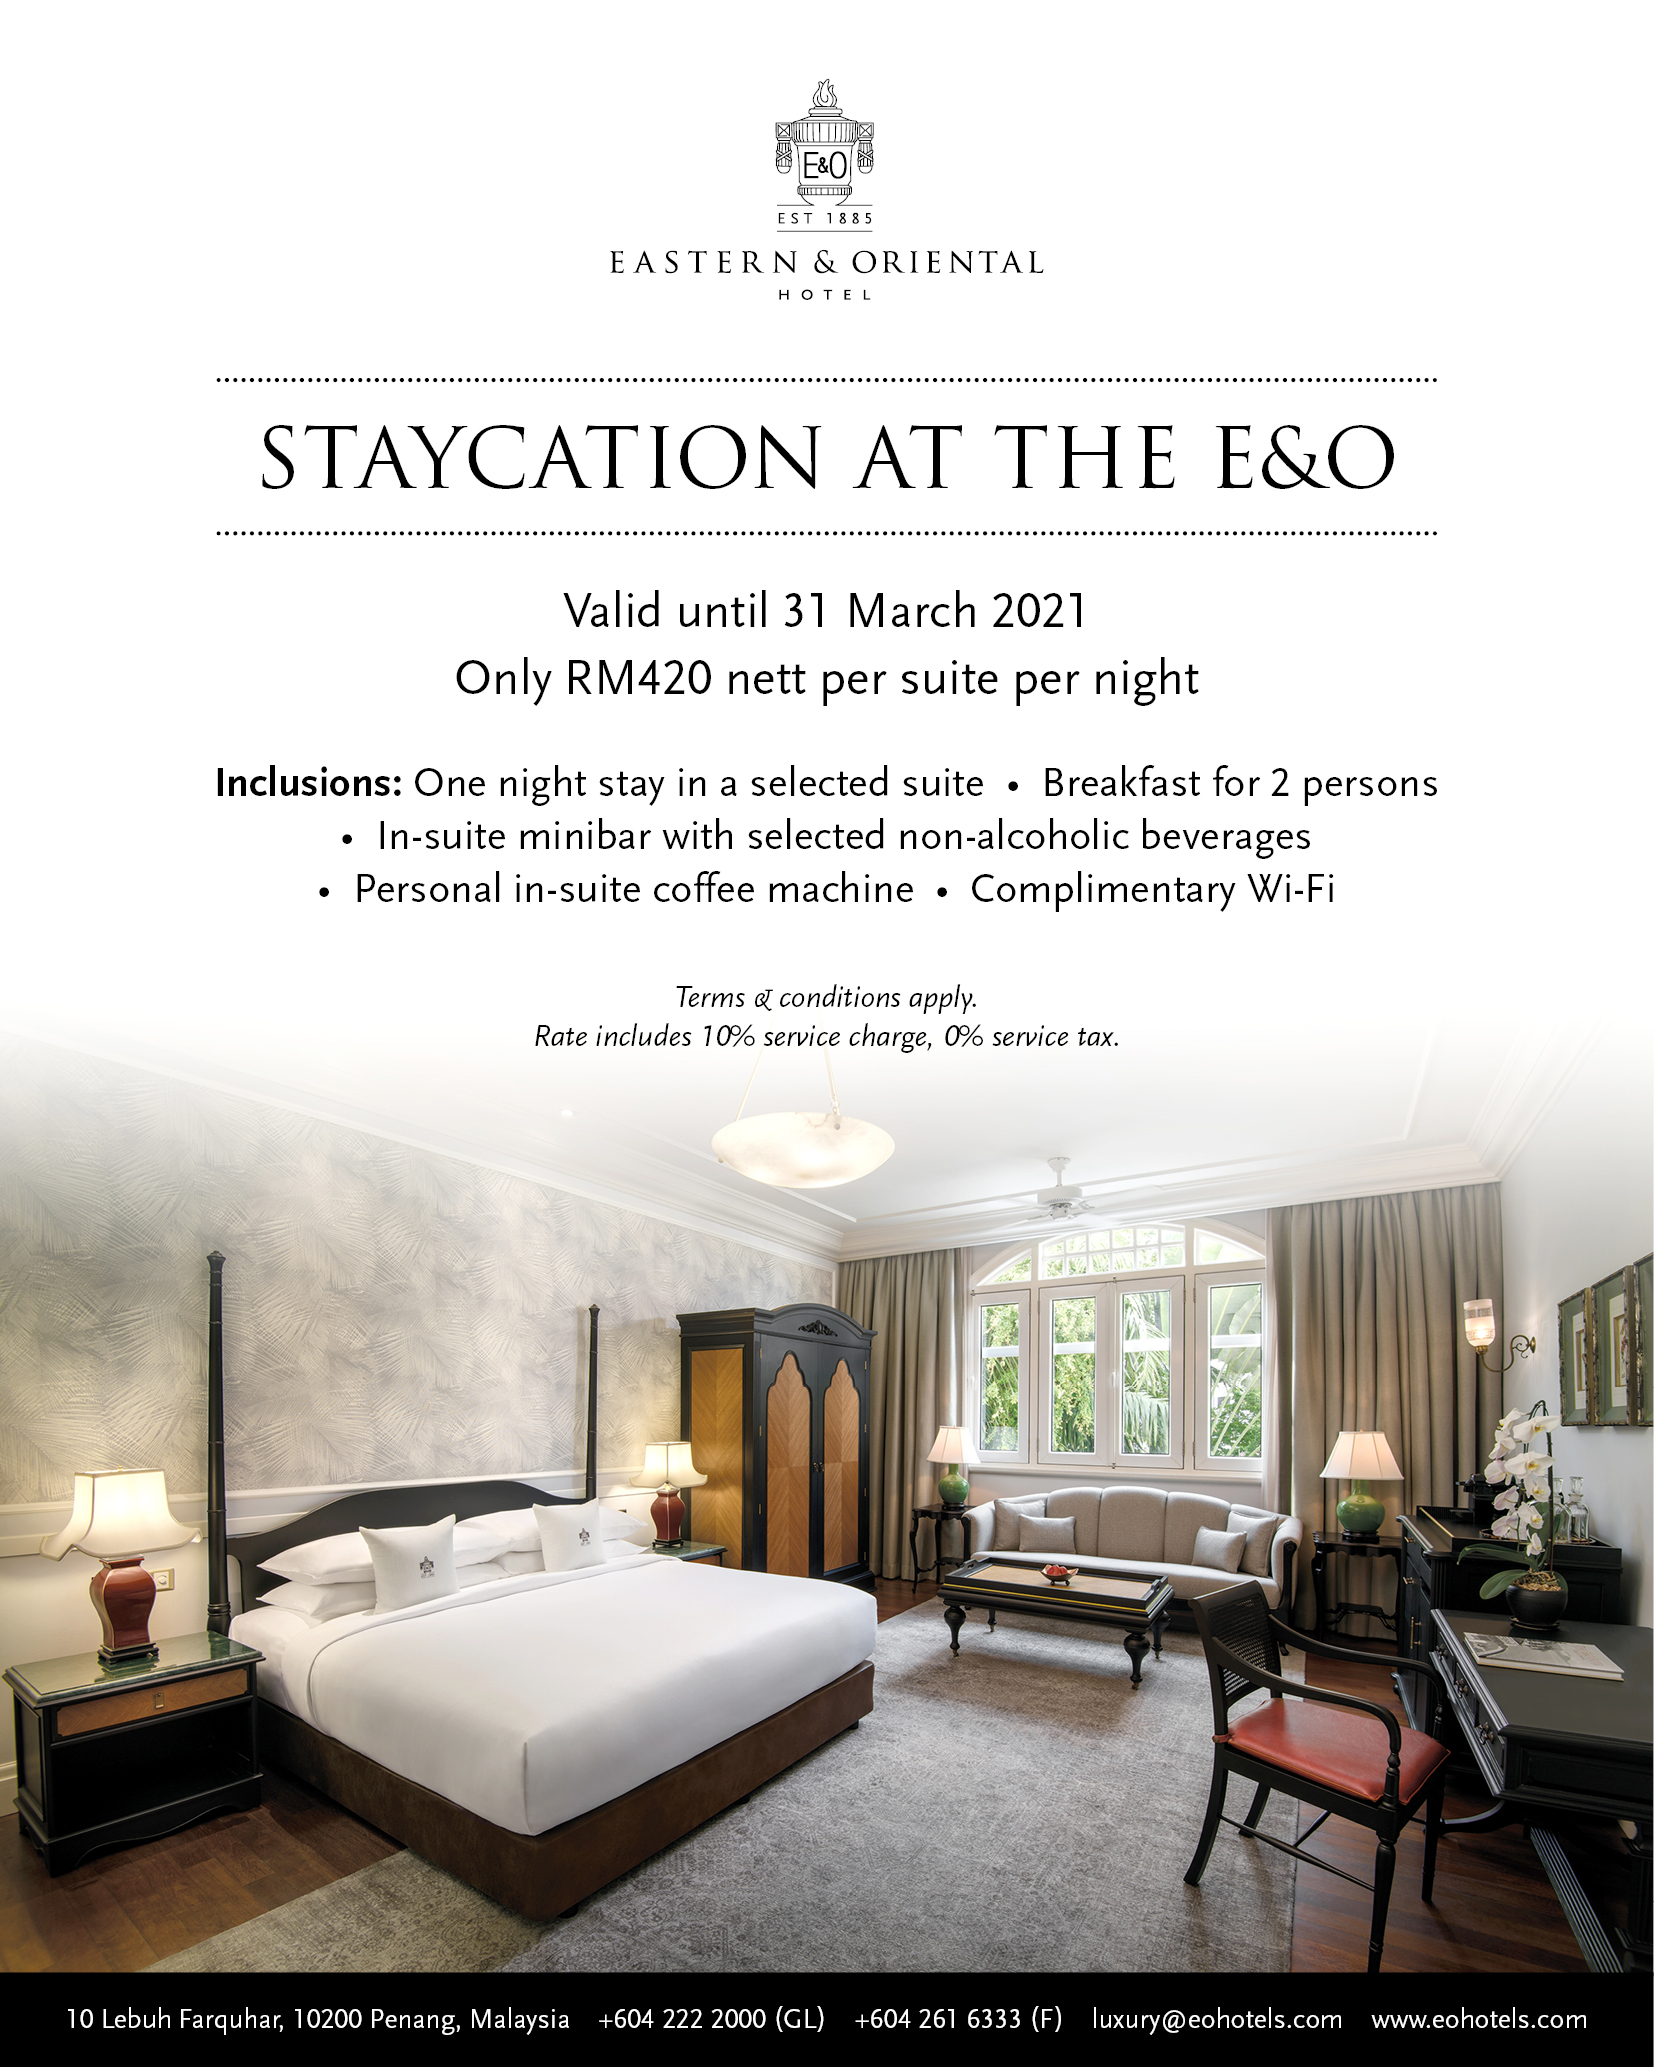 Staycation at the E&O (1)